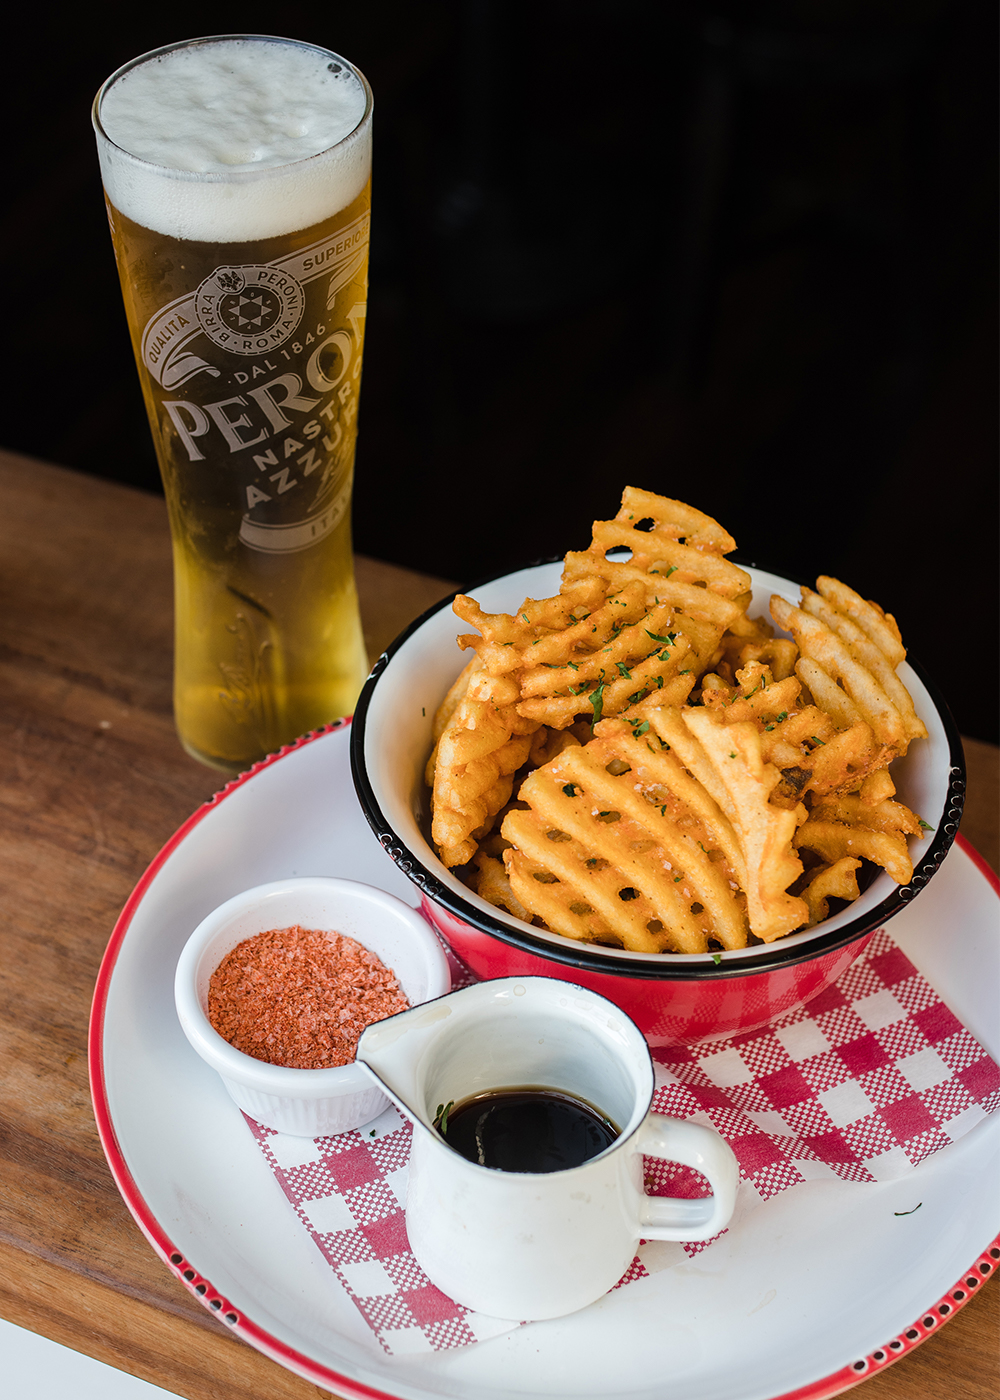 waffle fries and a beer